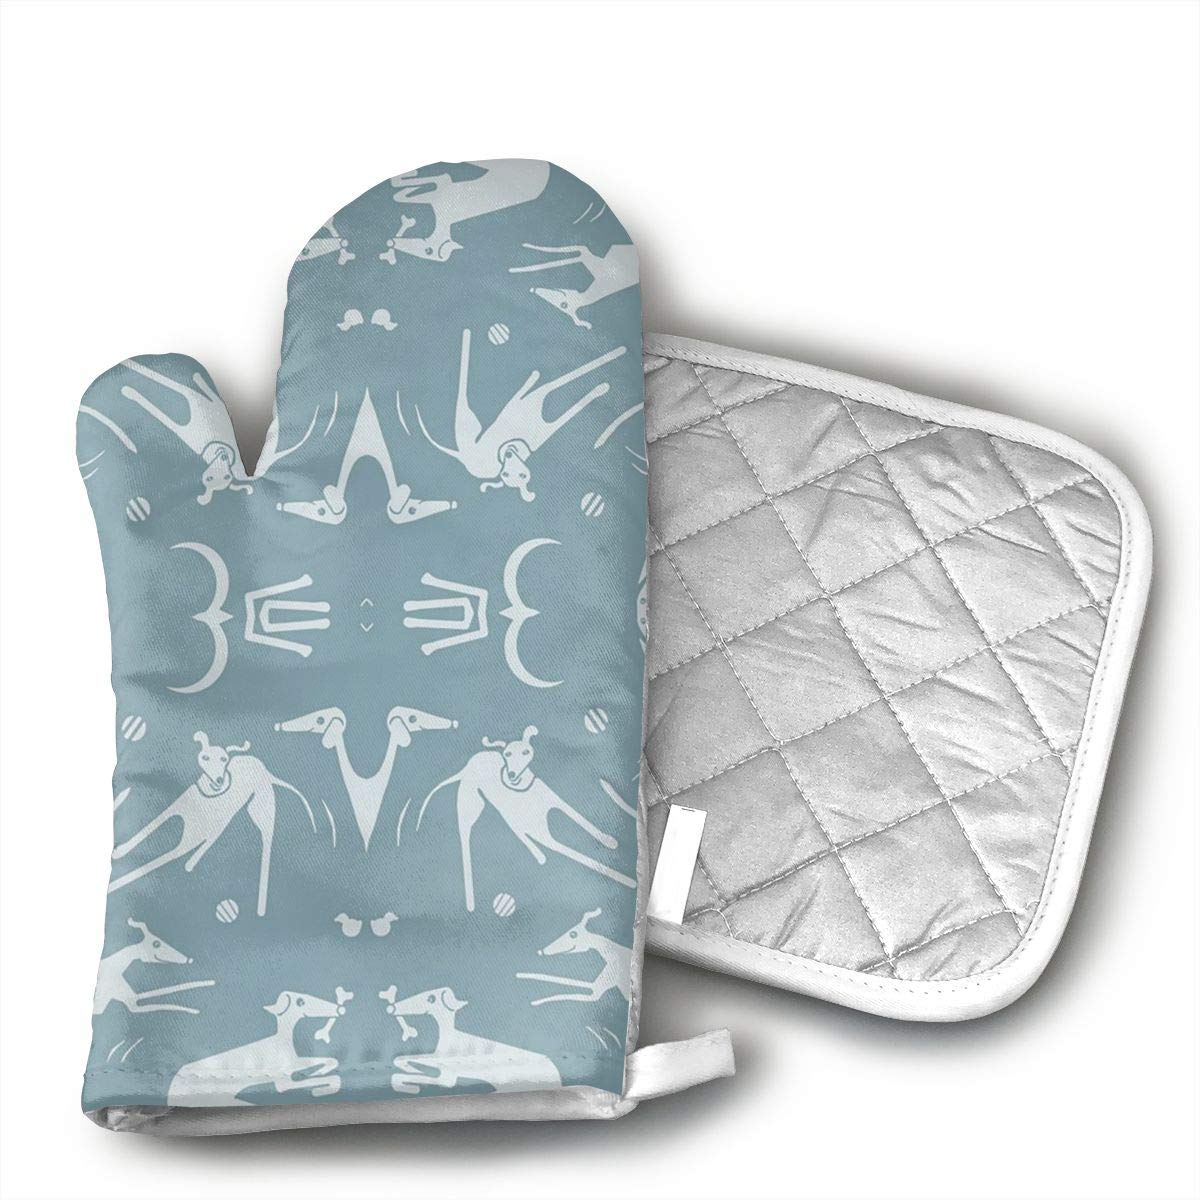 Whippet Greyhound Blue Oven Mitts And BBQ Gloves Pot Holders, Heat Resistant Mitts For Finger Hand Wrist Protection With Inner Lining, Kitchen Gloves For Grilling Machine Baking Grilling With Non-Slip